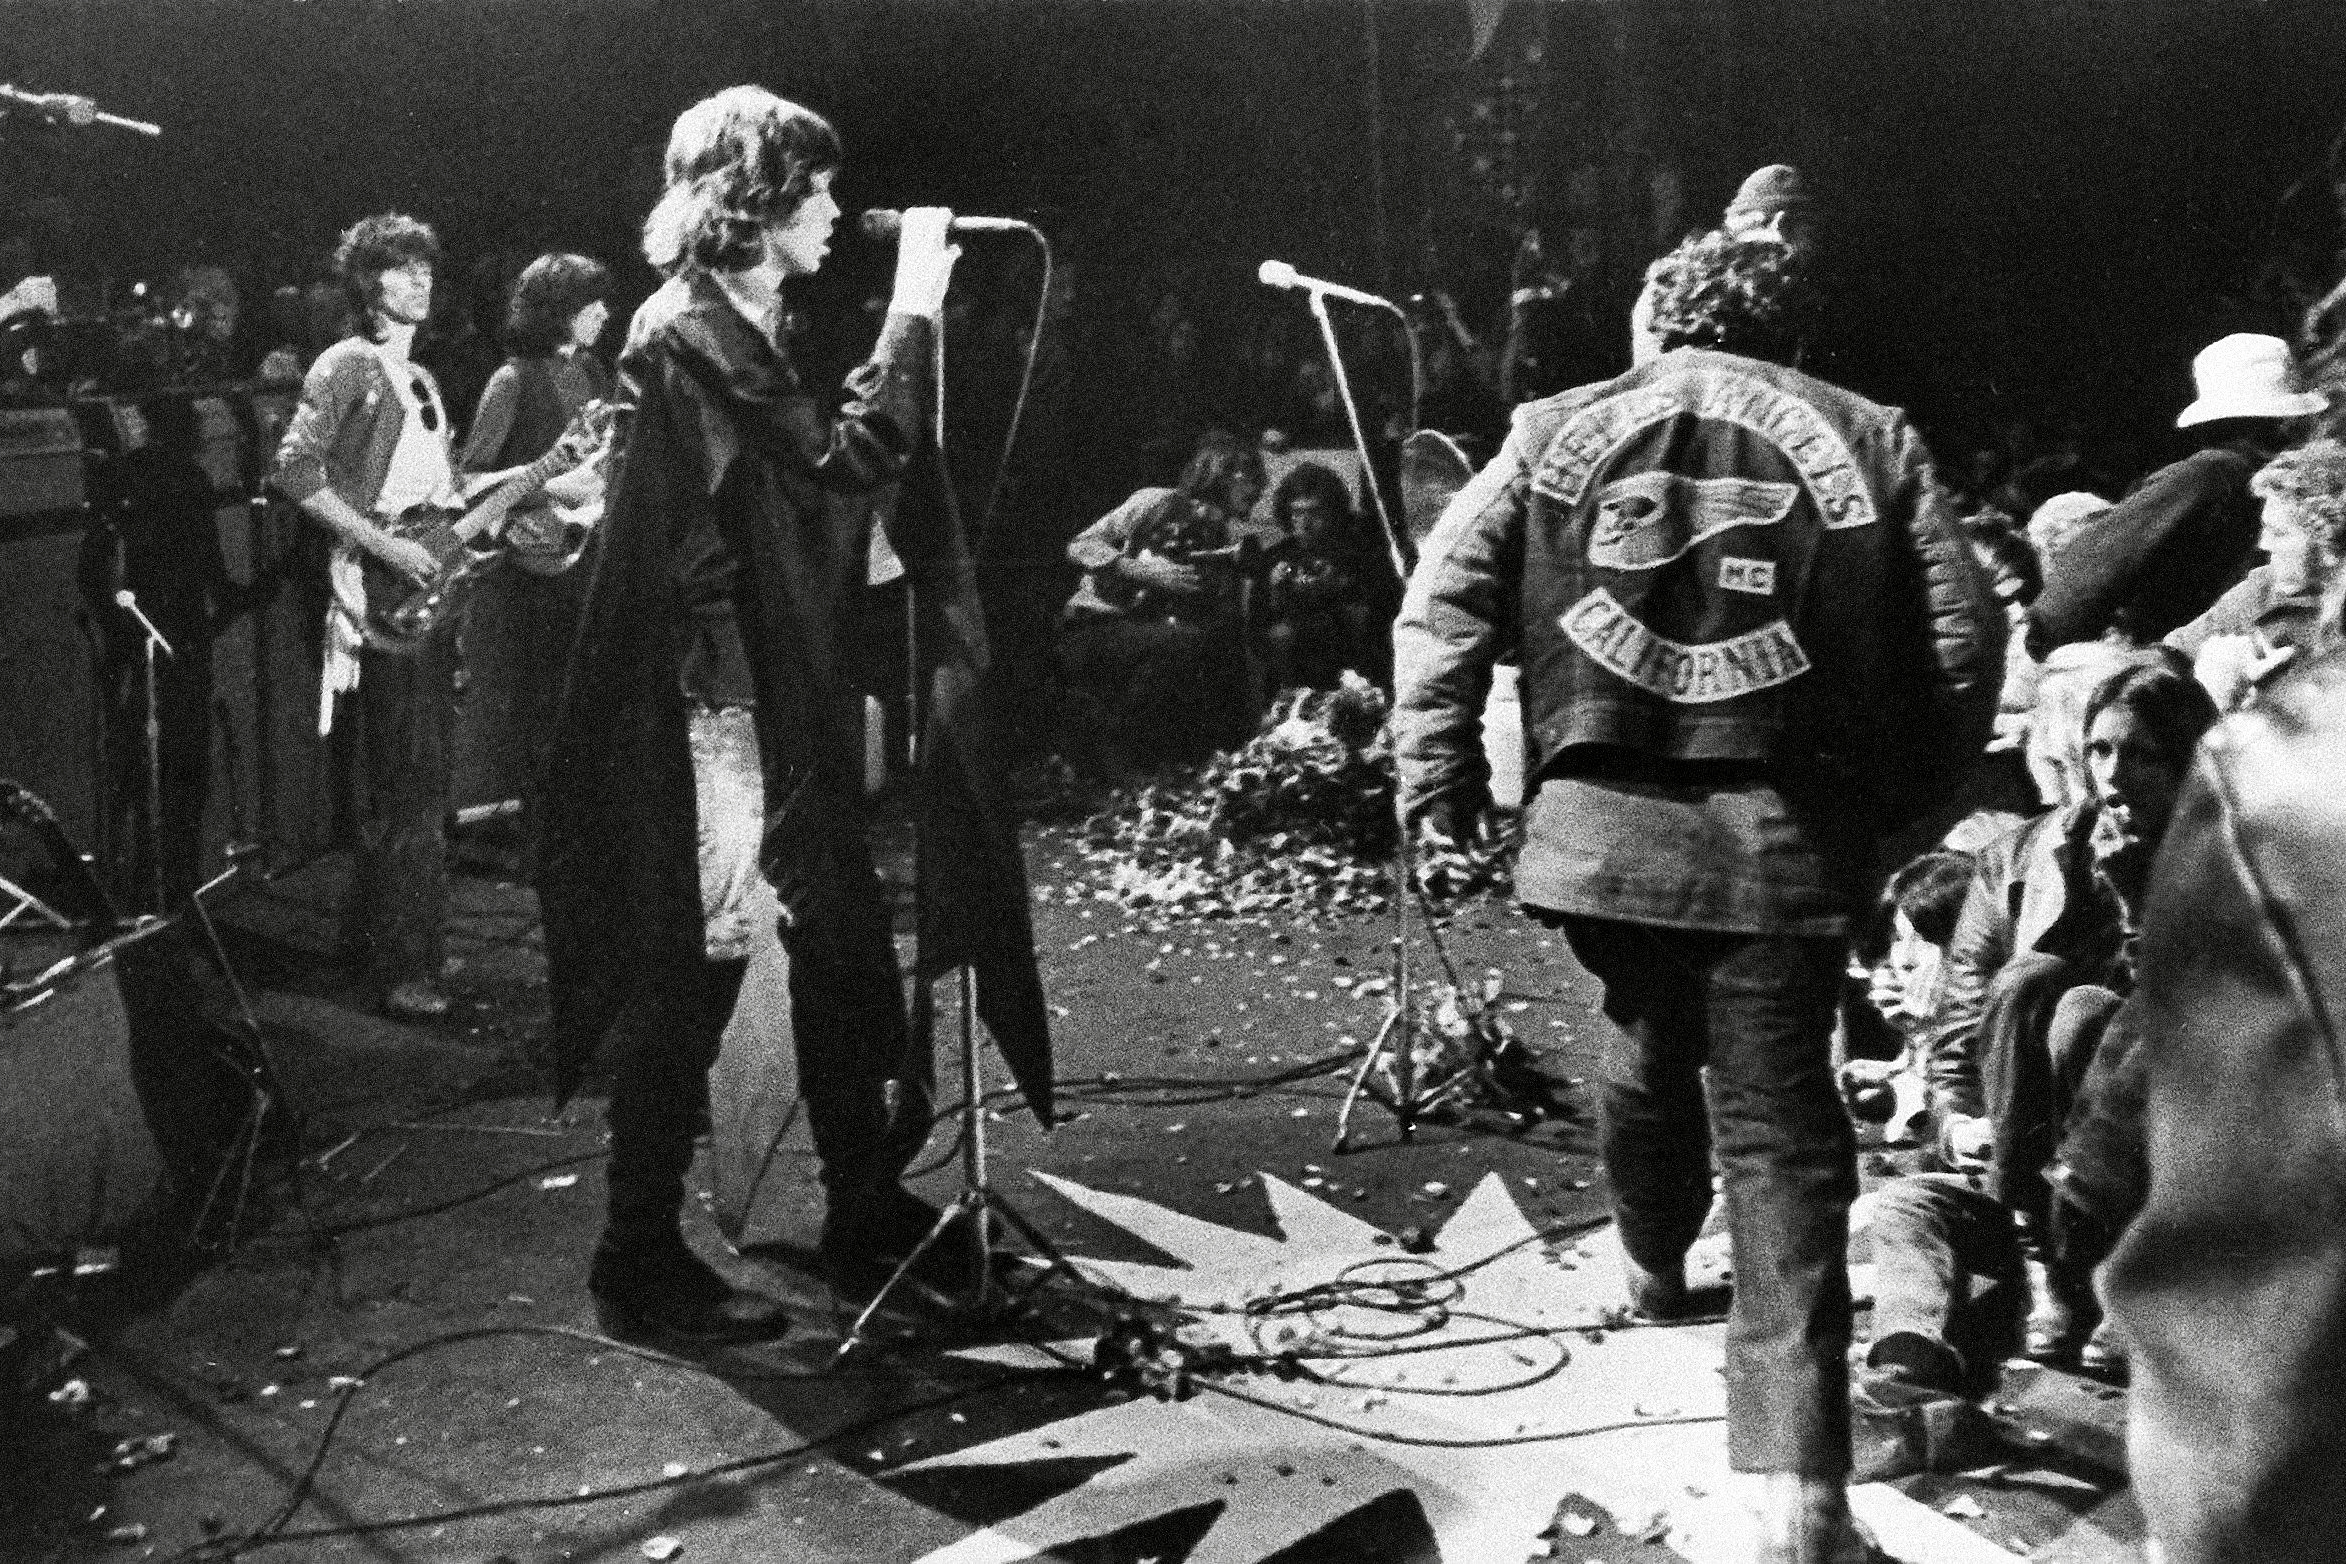 The Rolling Stones Disaster at Altamont: What Happened? – Rolling Stone